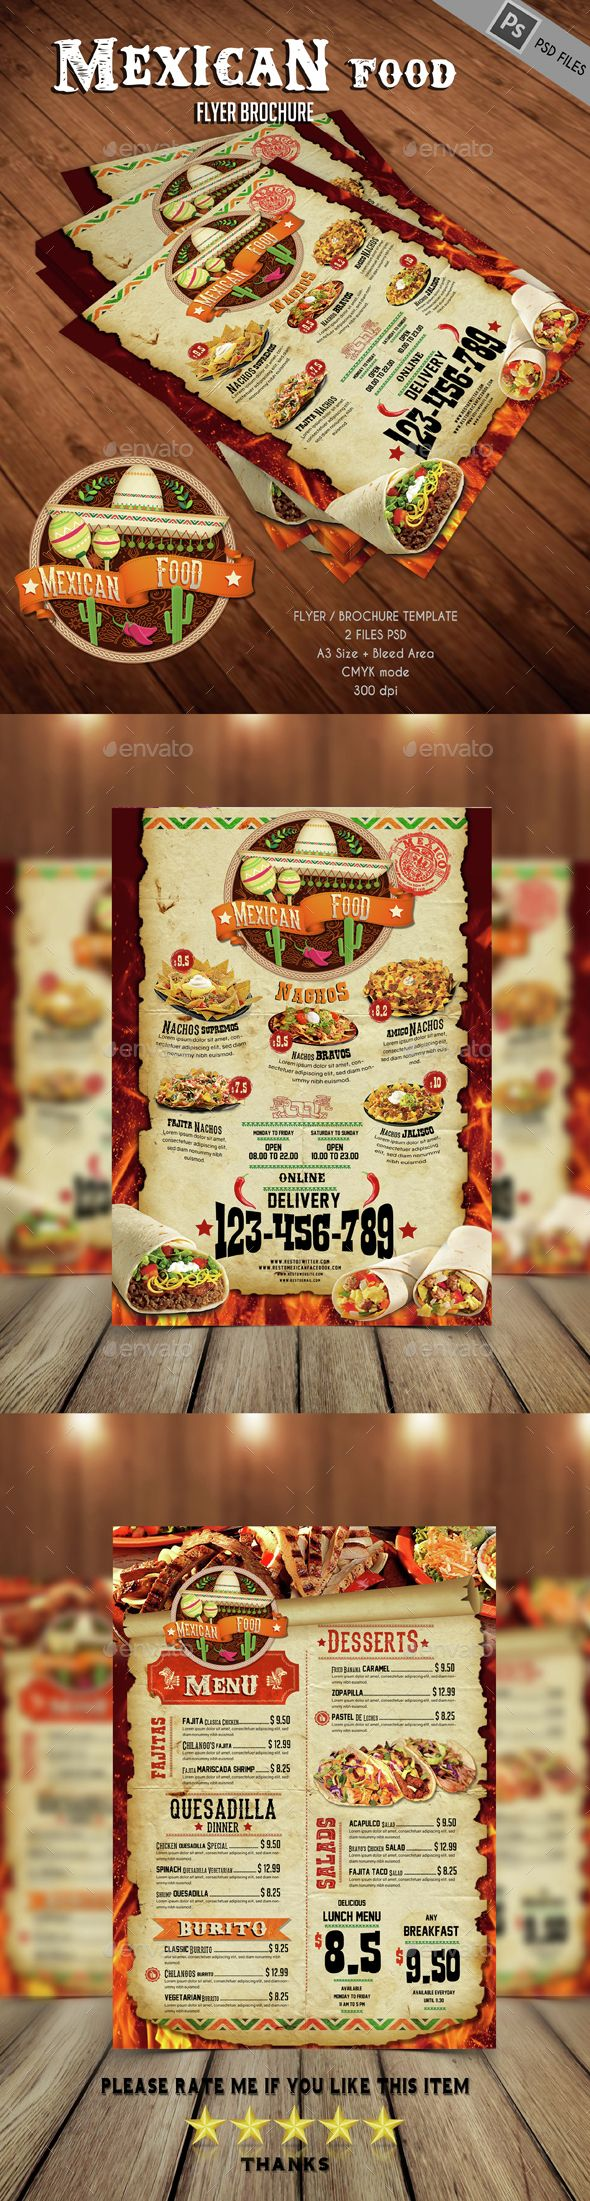 Mexican Food Menu Template PSD. Download here: http://graphicriver.net/item/mexican-food/14675797?ref=ksioks